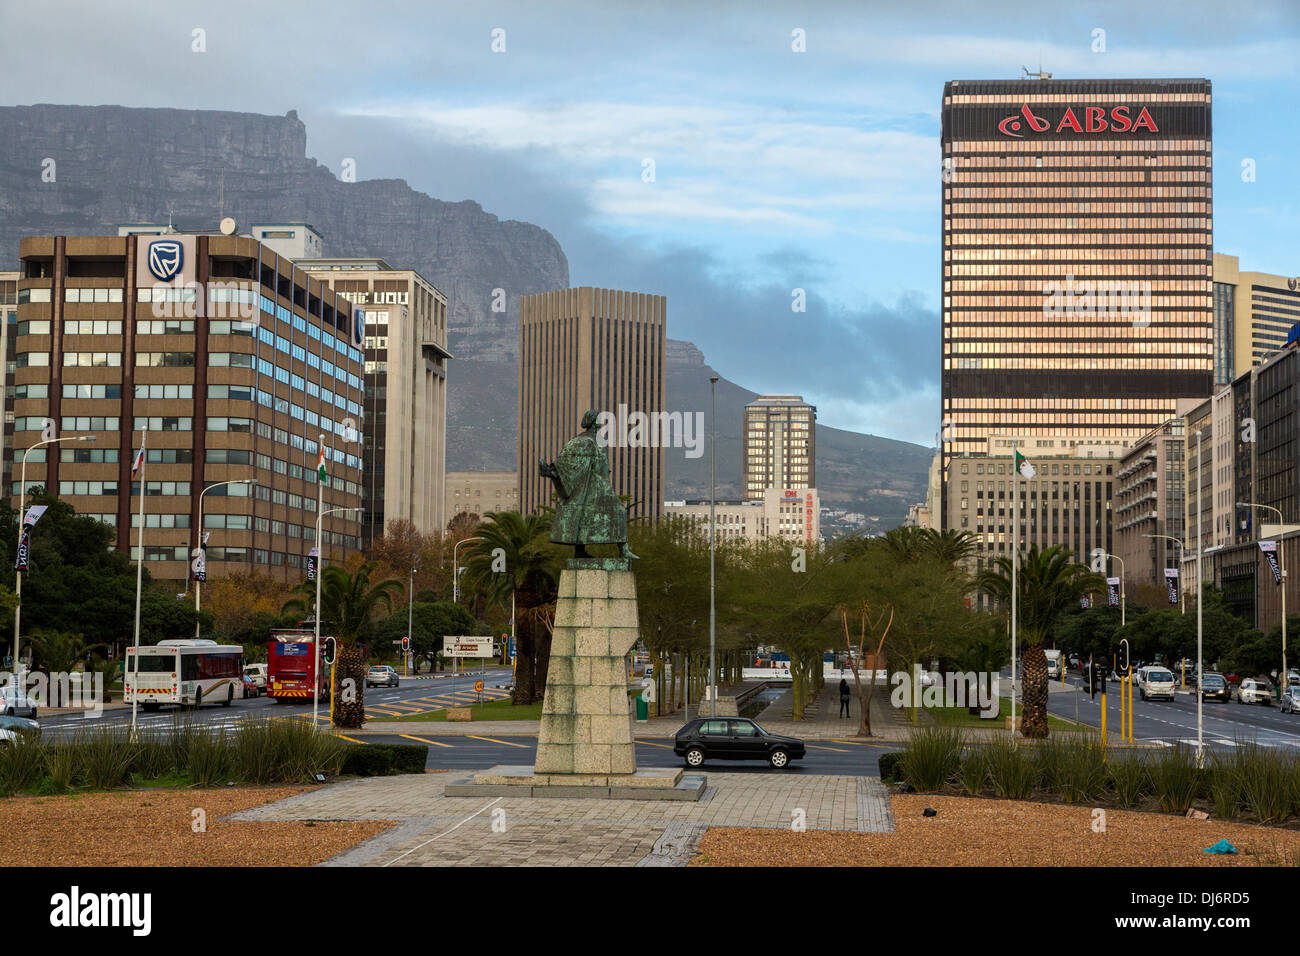 South Africa, Cape Town. Statue of Bartholomew Diaz in Traffic Circle. Adderley Street in Background. - Stock Image